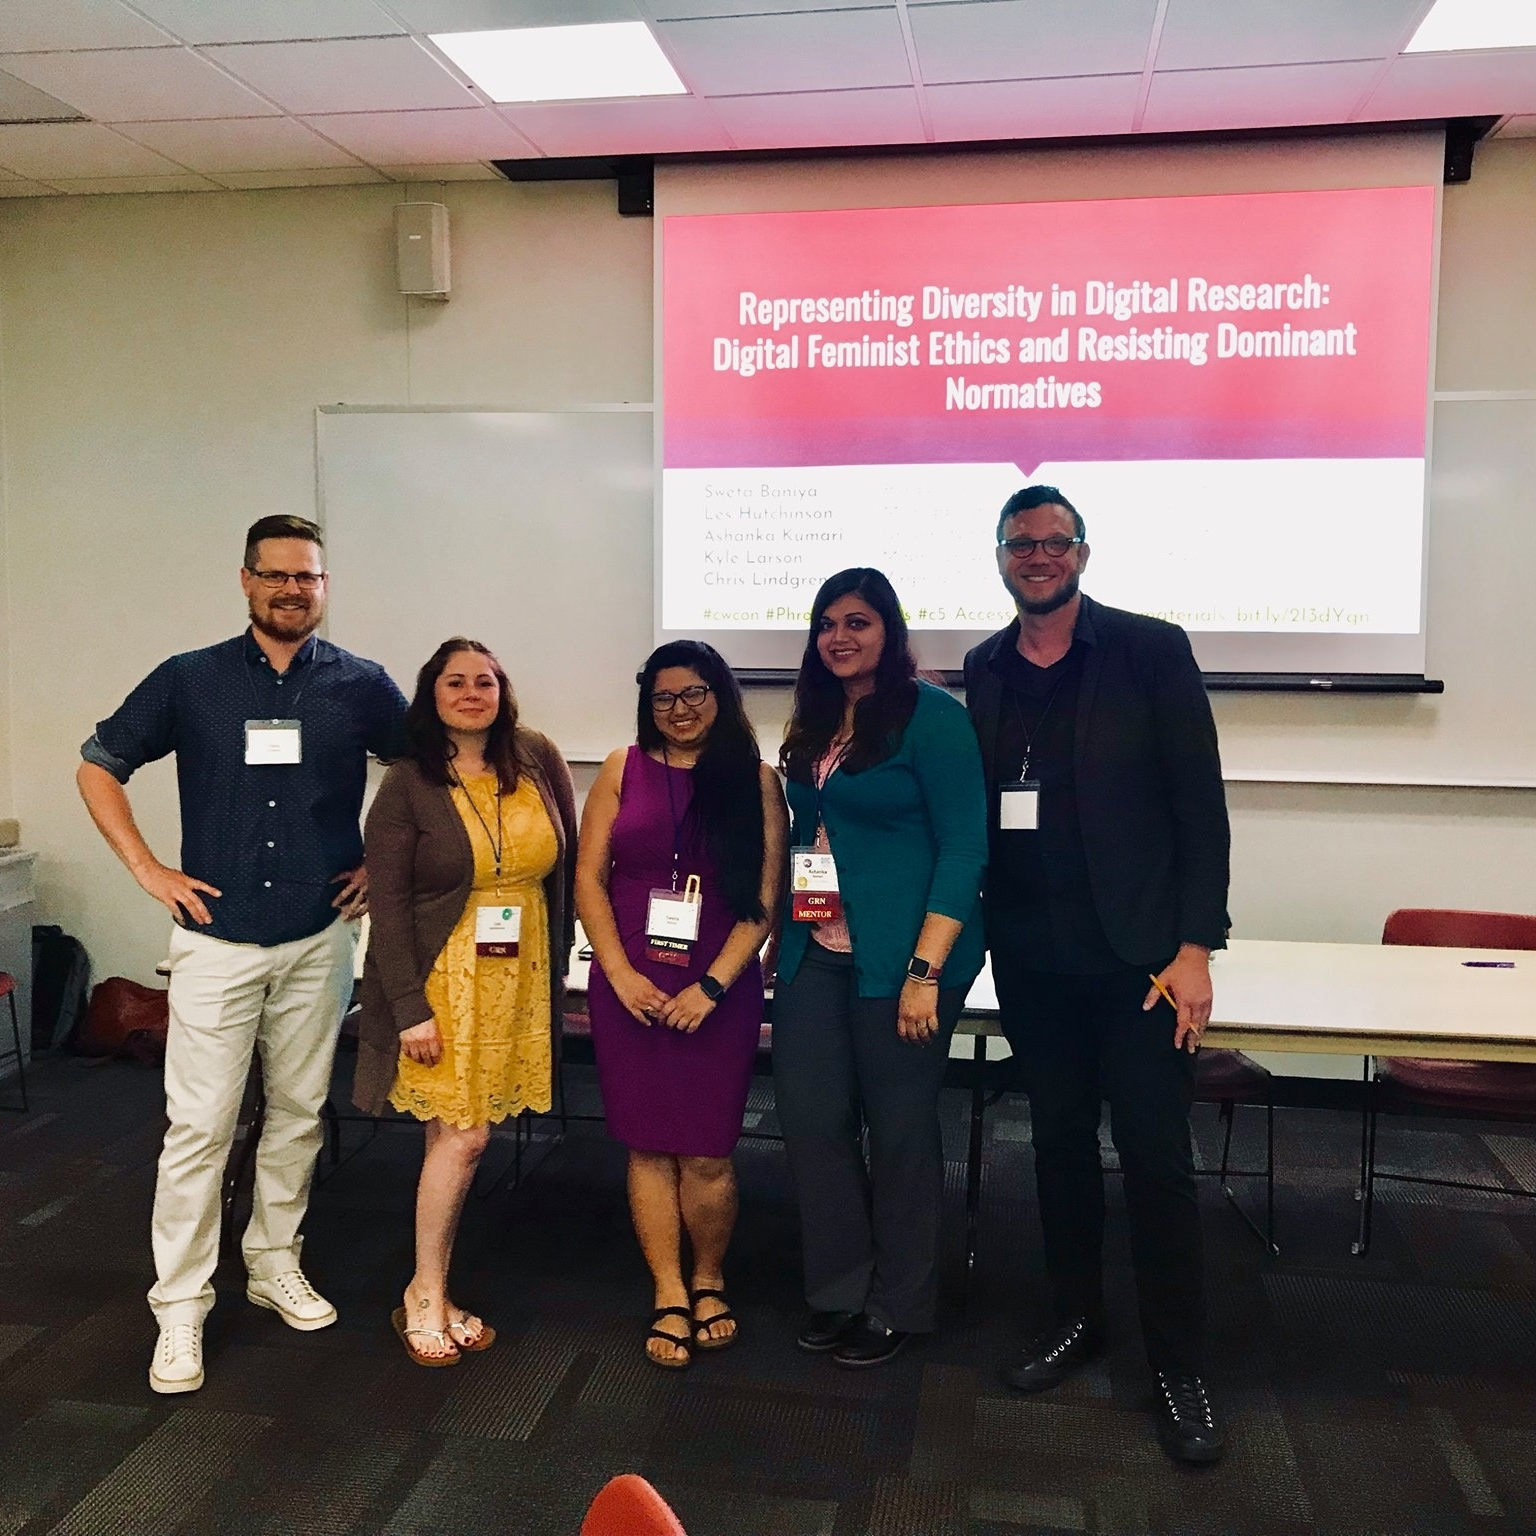 Computers and Writing 2018 - Pictured here (left to right): Chris Lindgren, Les Hutchinson, Sweta Baniya, Ashanka Kumari, and Kyle Larson stand in front of a projector screen displaying their opening powerpoint slide for their Computers and Writing Roundtable on representing diversity in digital research. Baniya, Sweta, Les Hutchinson, Ashanka Kumari, Kyle Larson, and Chris Lindgren.